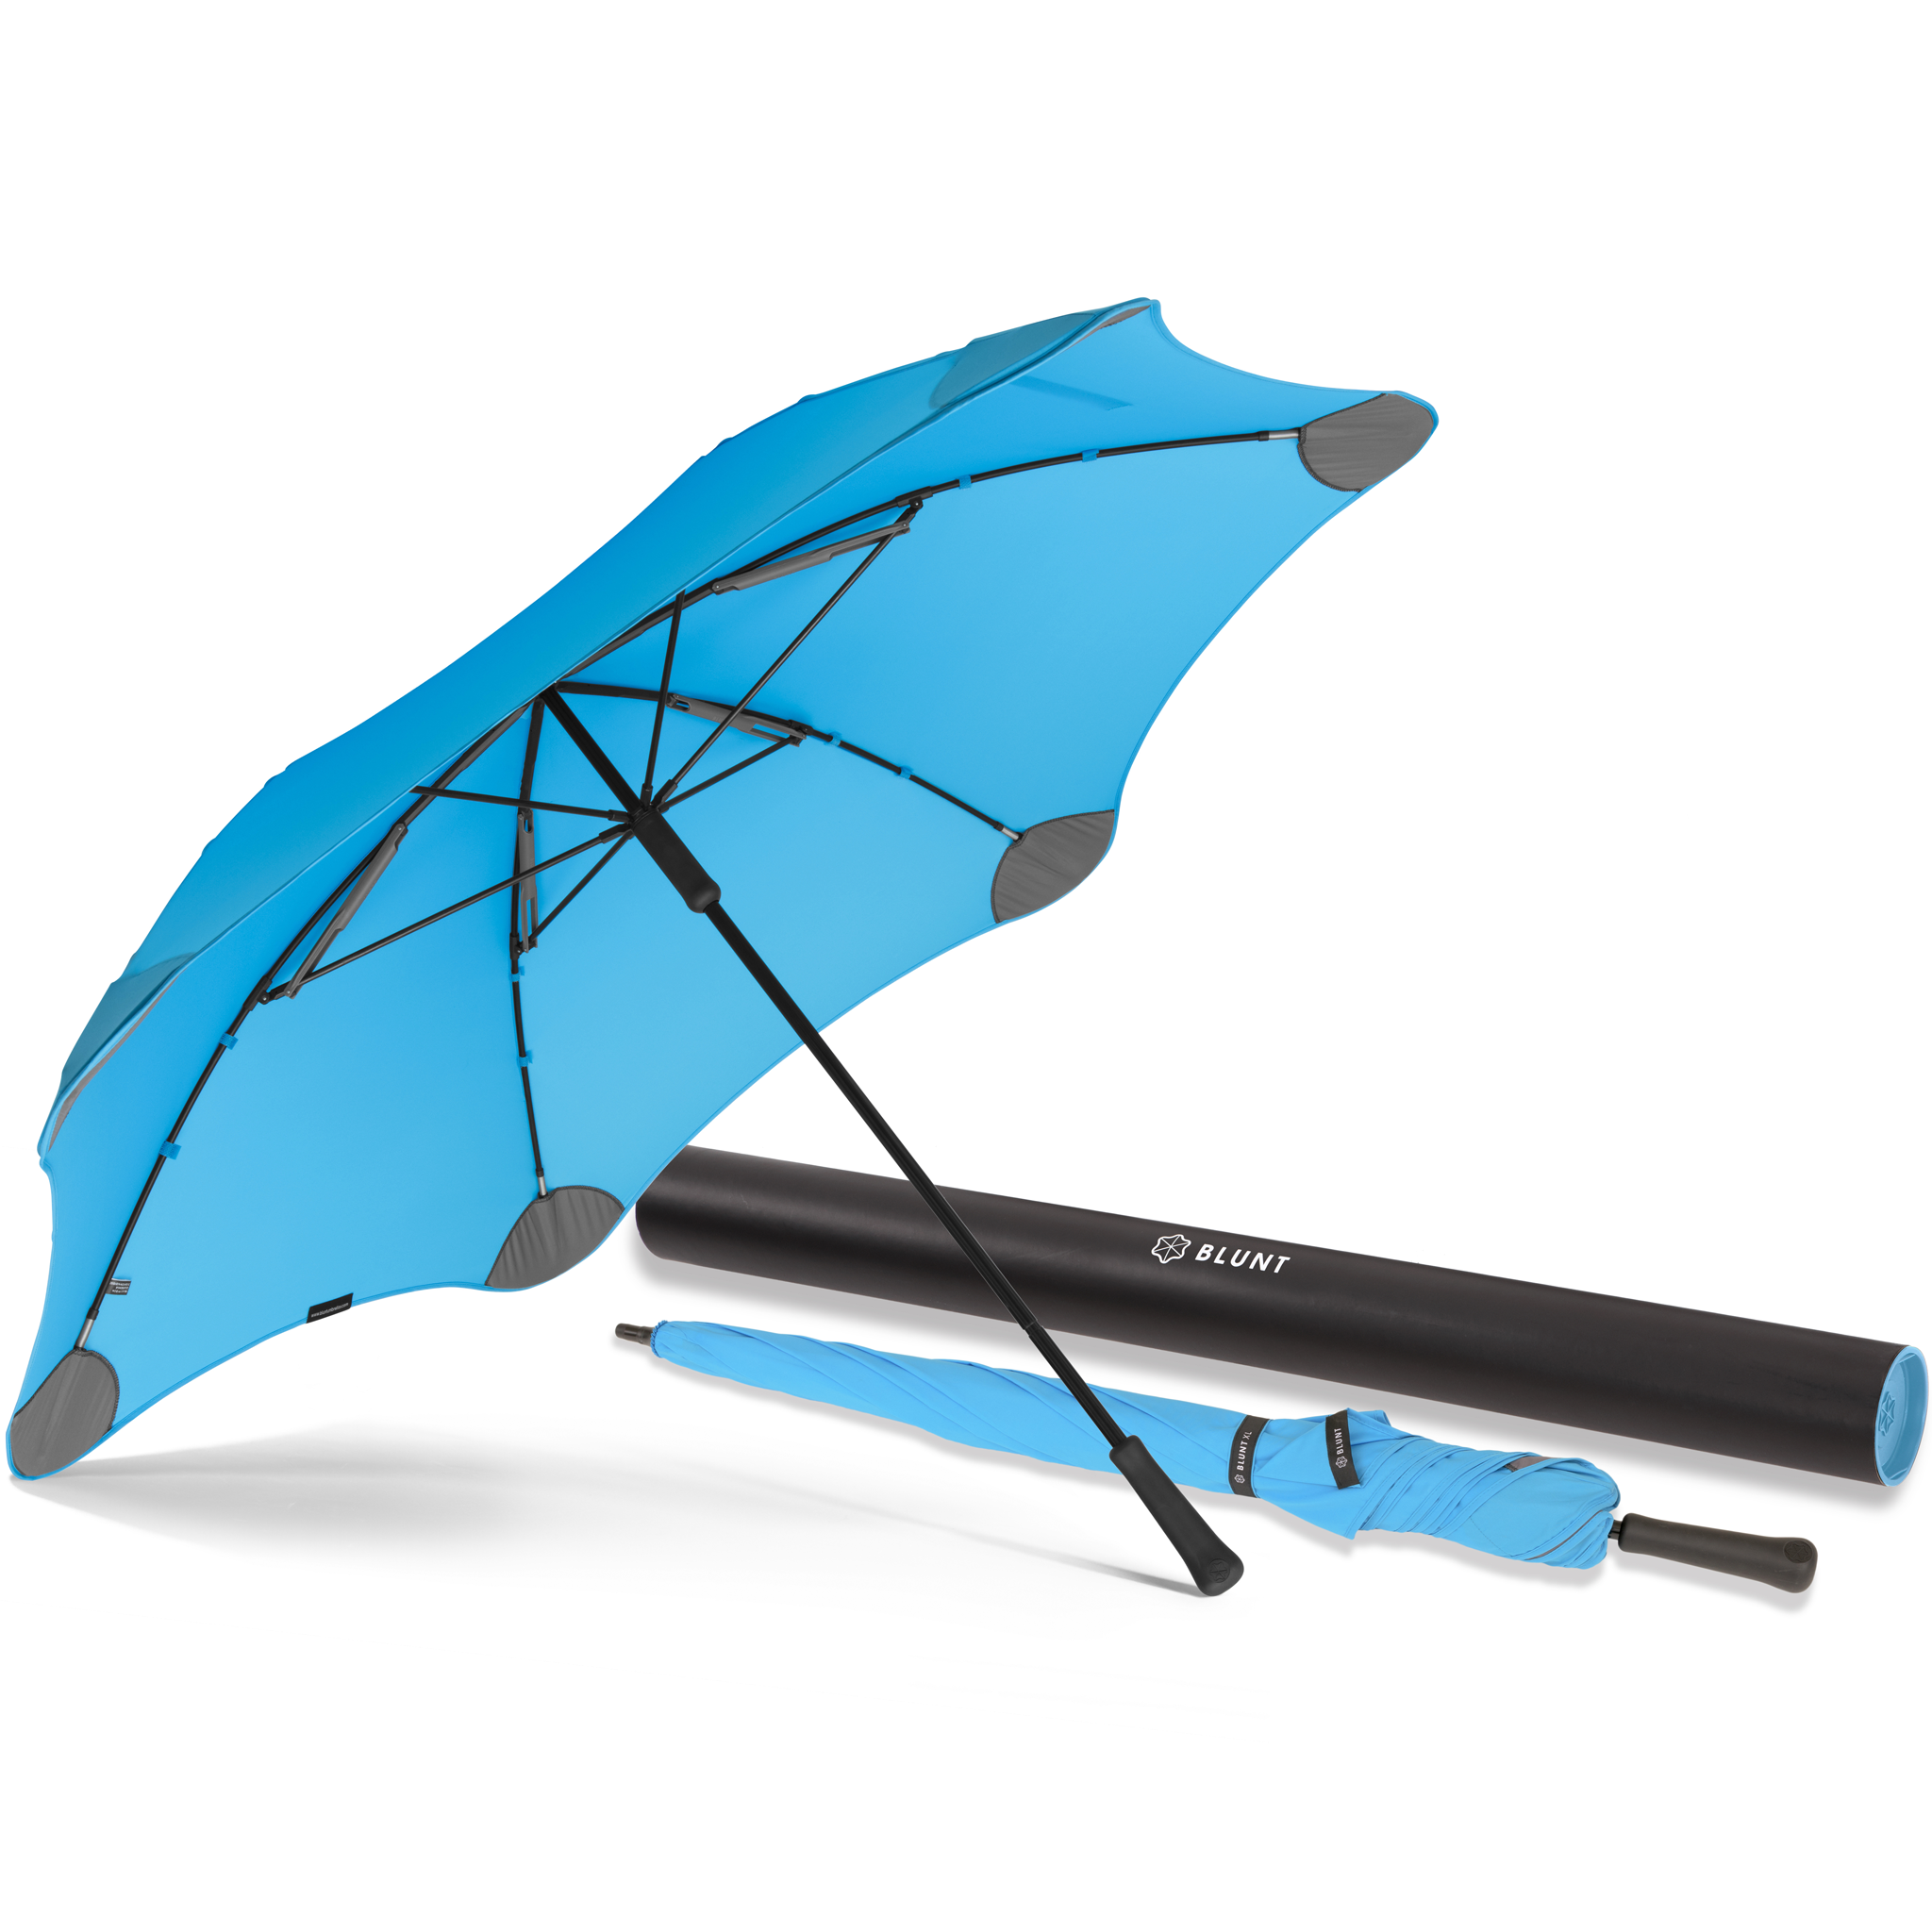 Blunt Umbrella XL